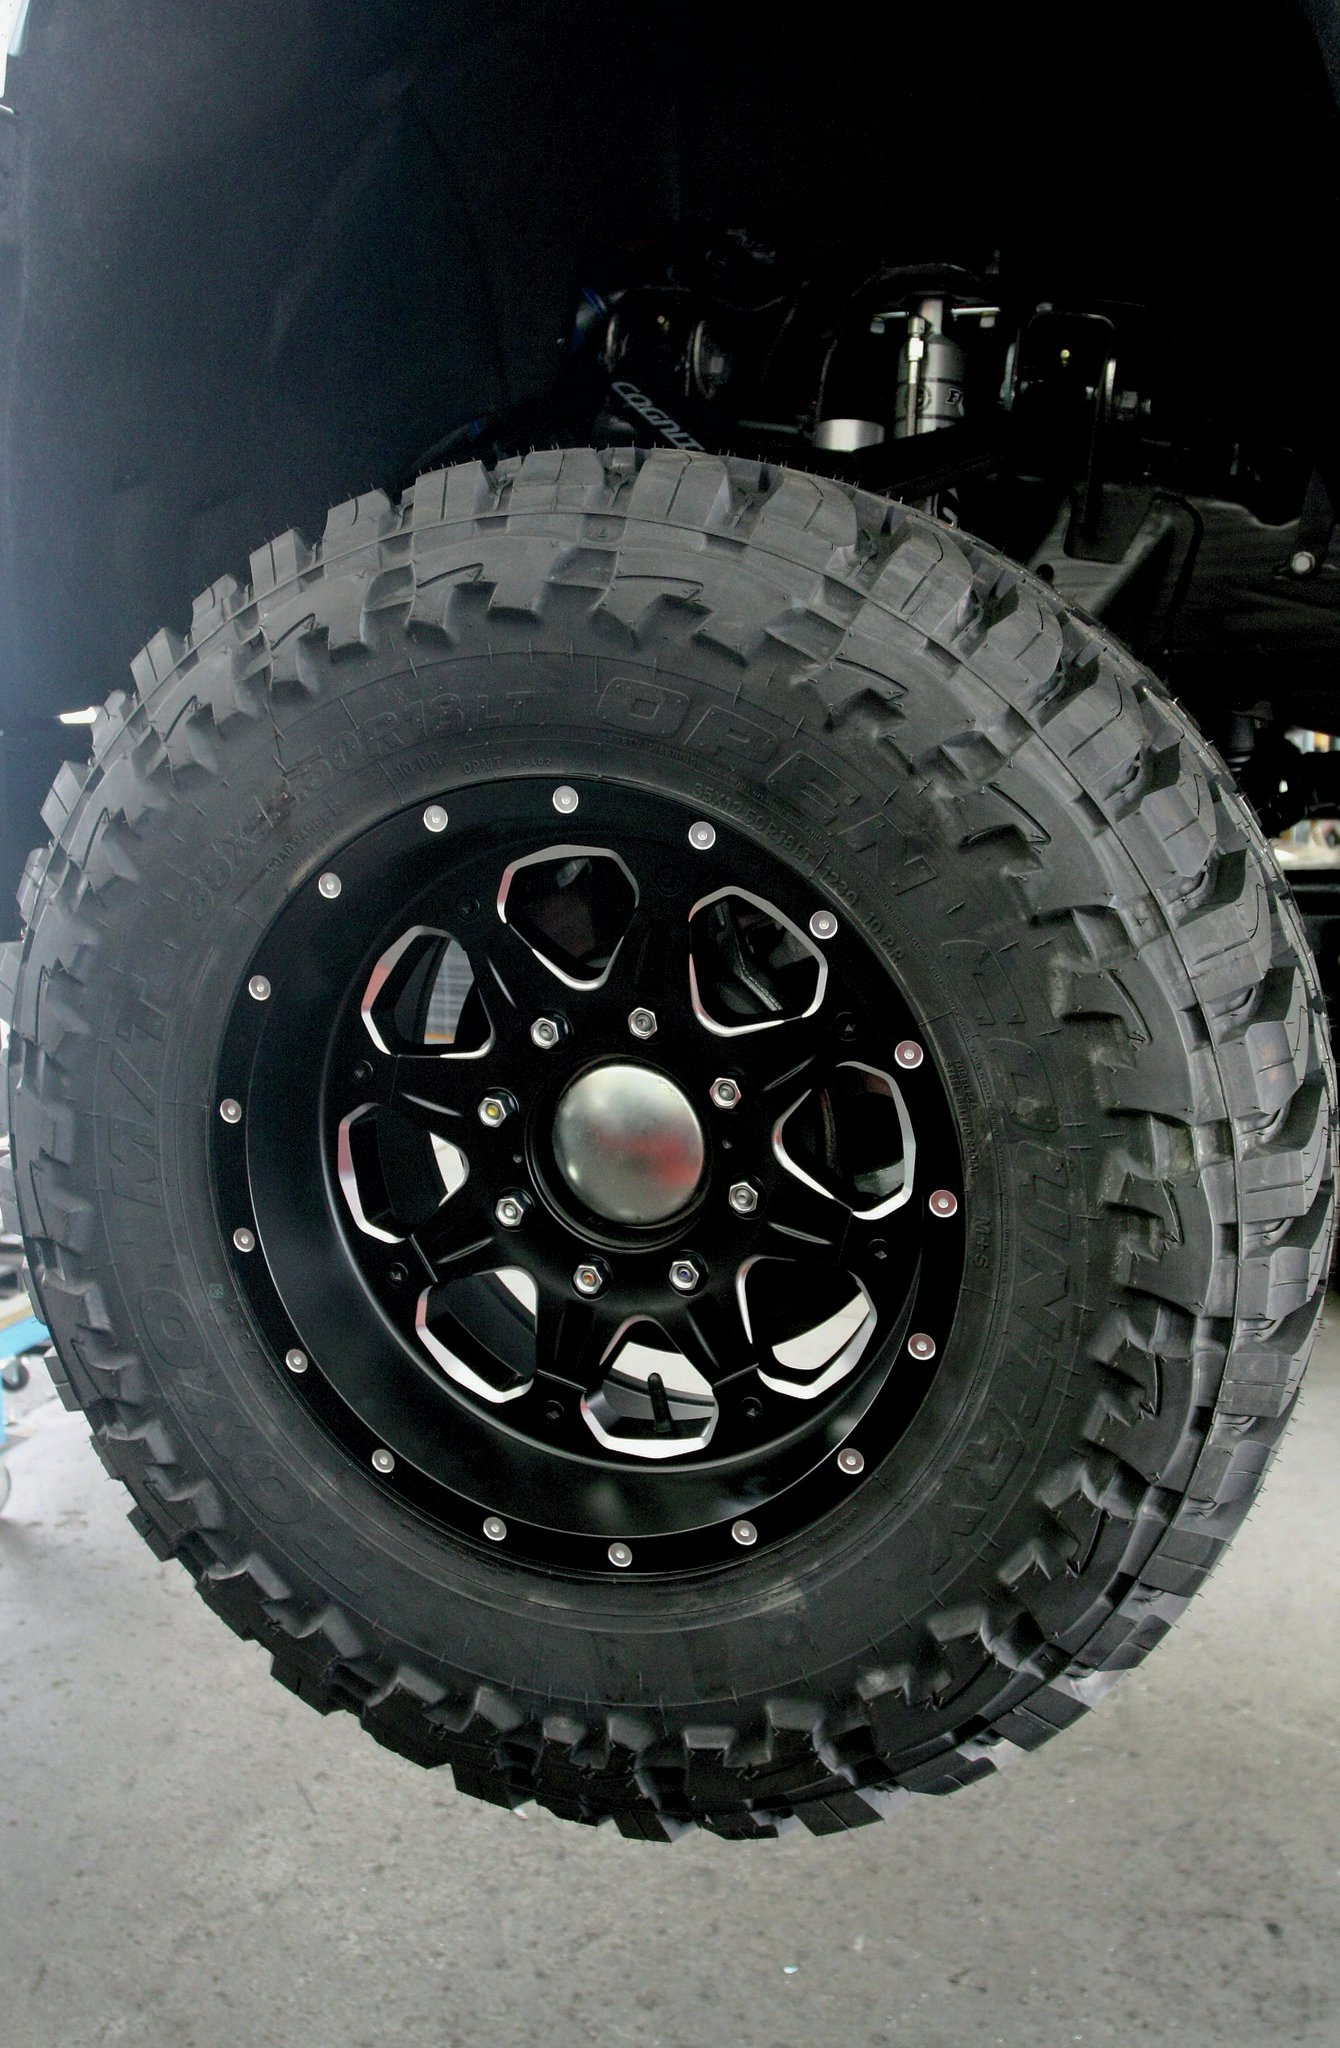 Finishing off the install in style was the addition of the Toyo Open Country M/T tires (35x12.50R18LT) mounted onto 18-inch Fuel Boost D534 wheels.